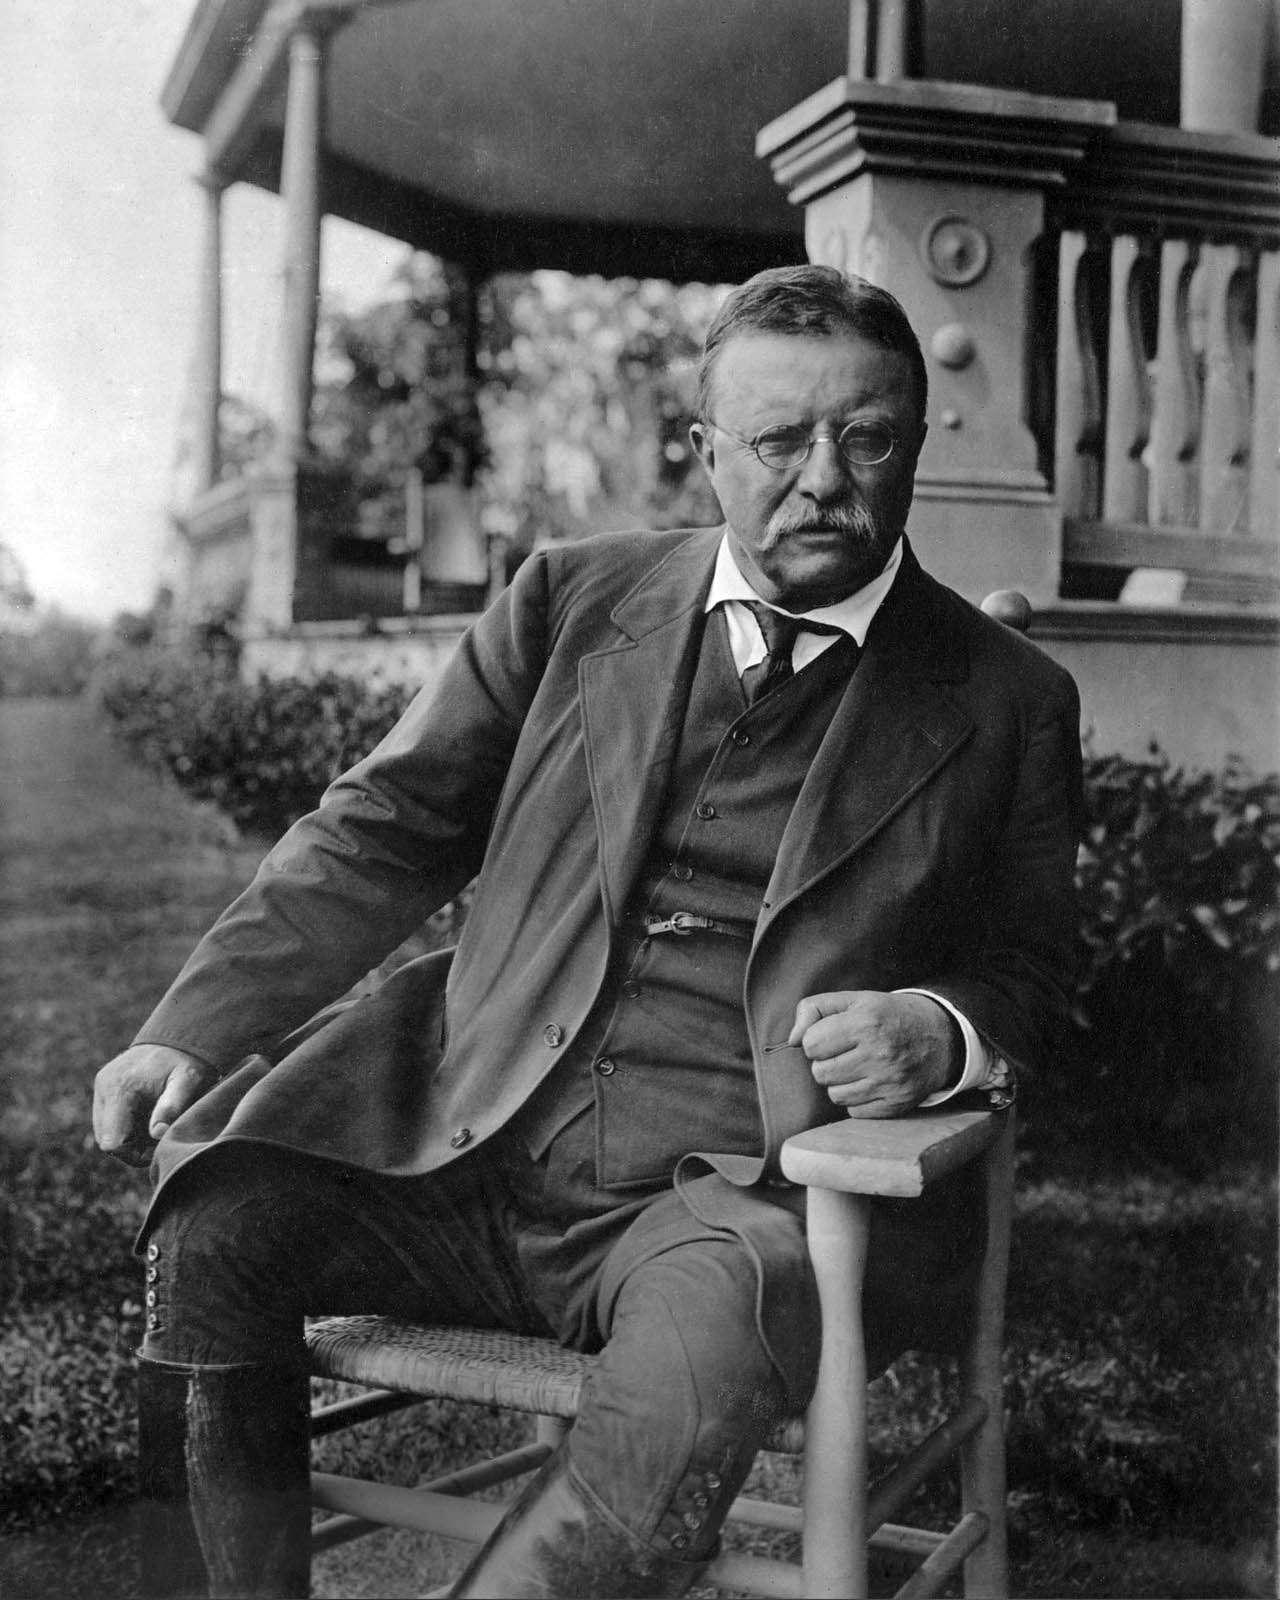 theodore roosevelt Theodore teddy roosevelt (october 27, 1858-january 6, 1919), was the 26th president of the united stateshe was born in new york.